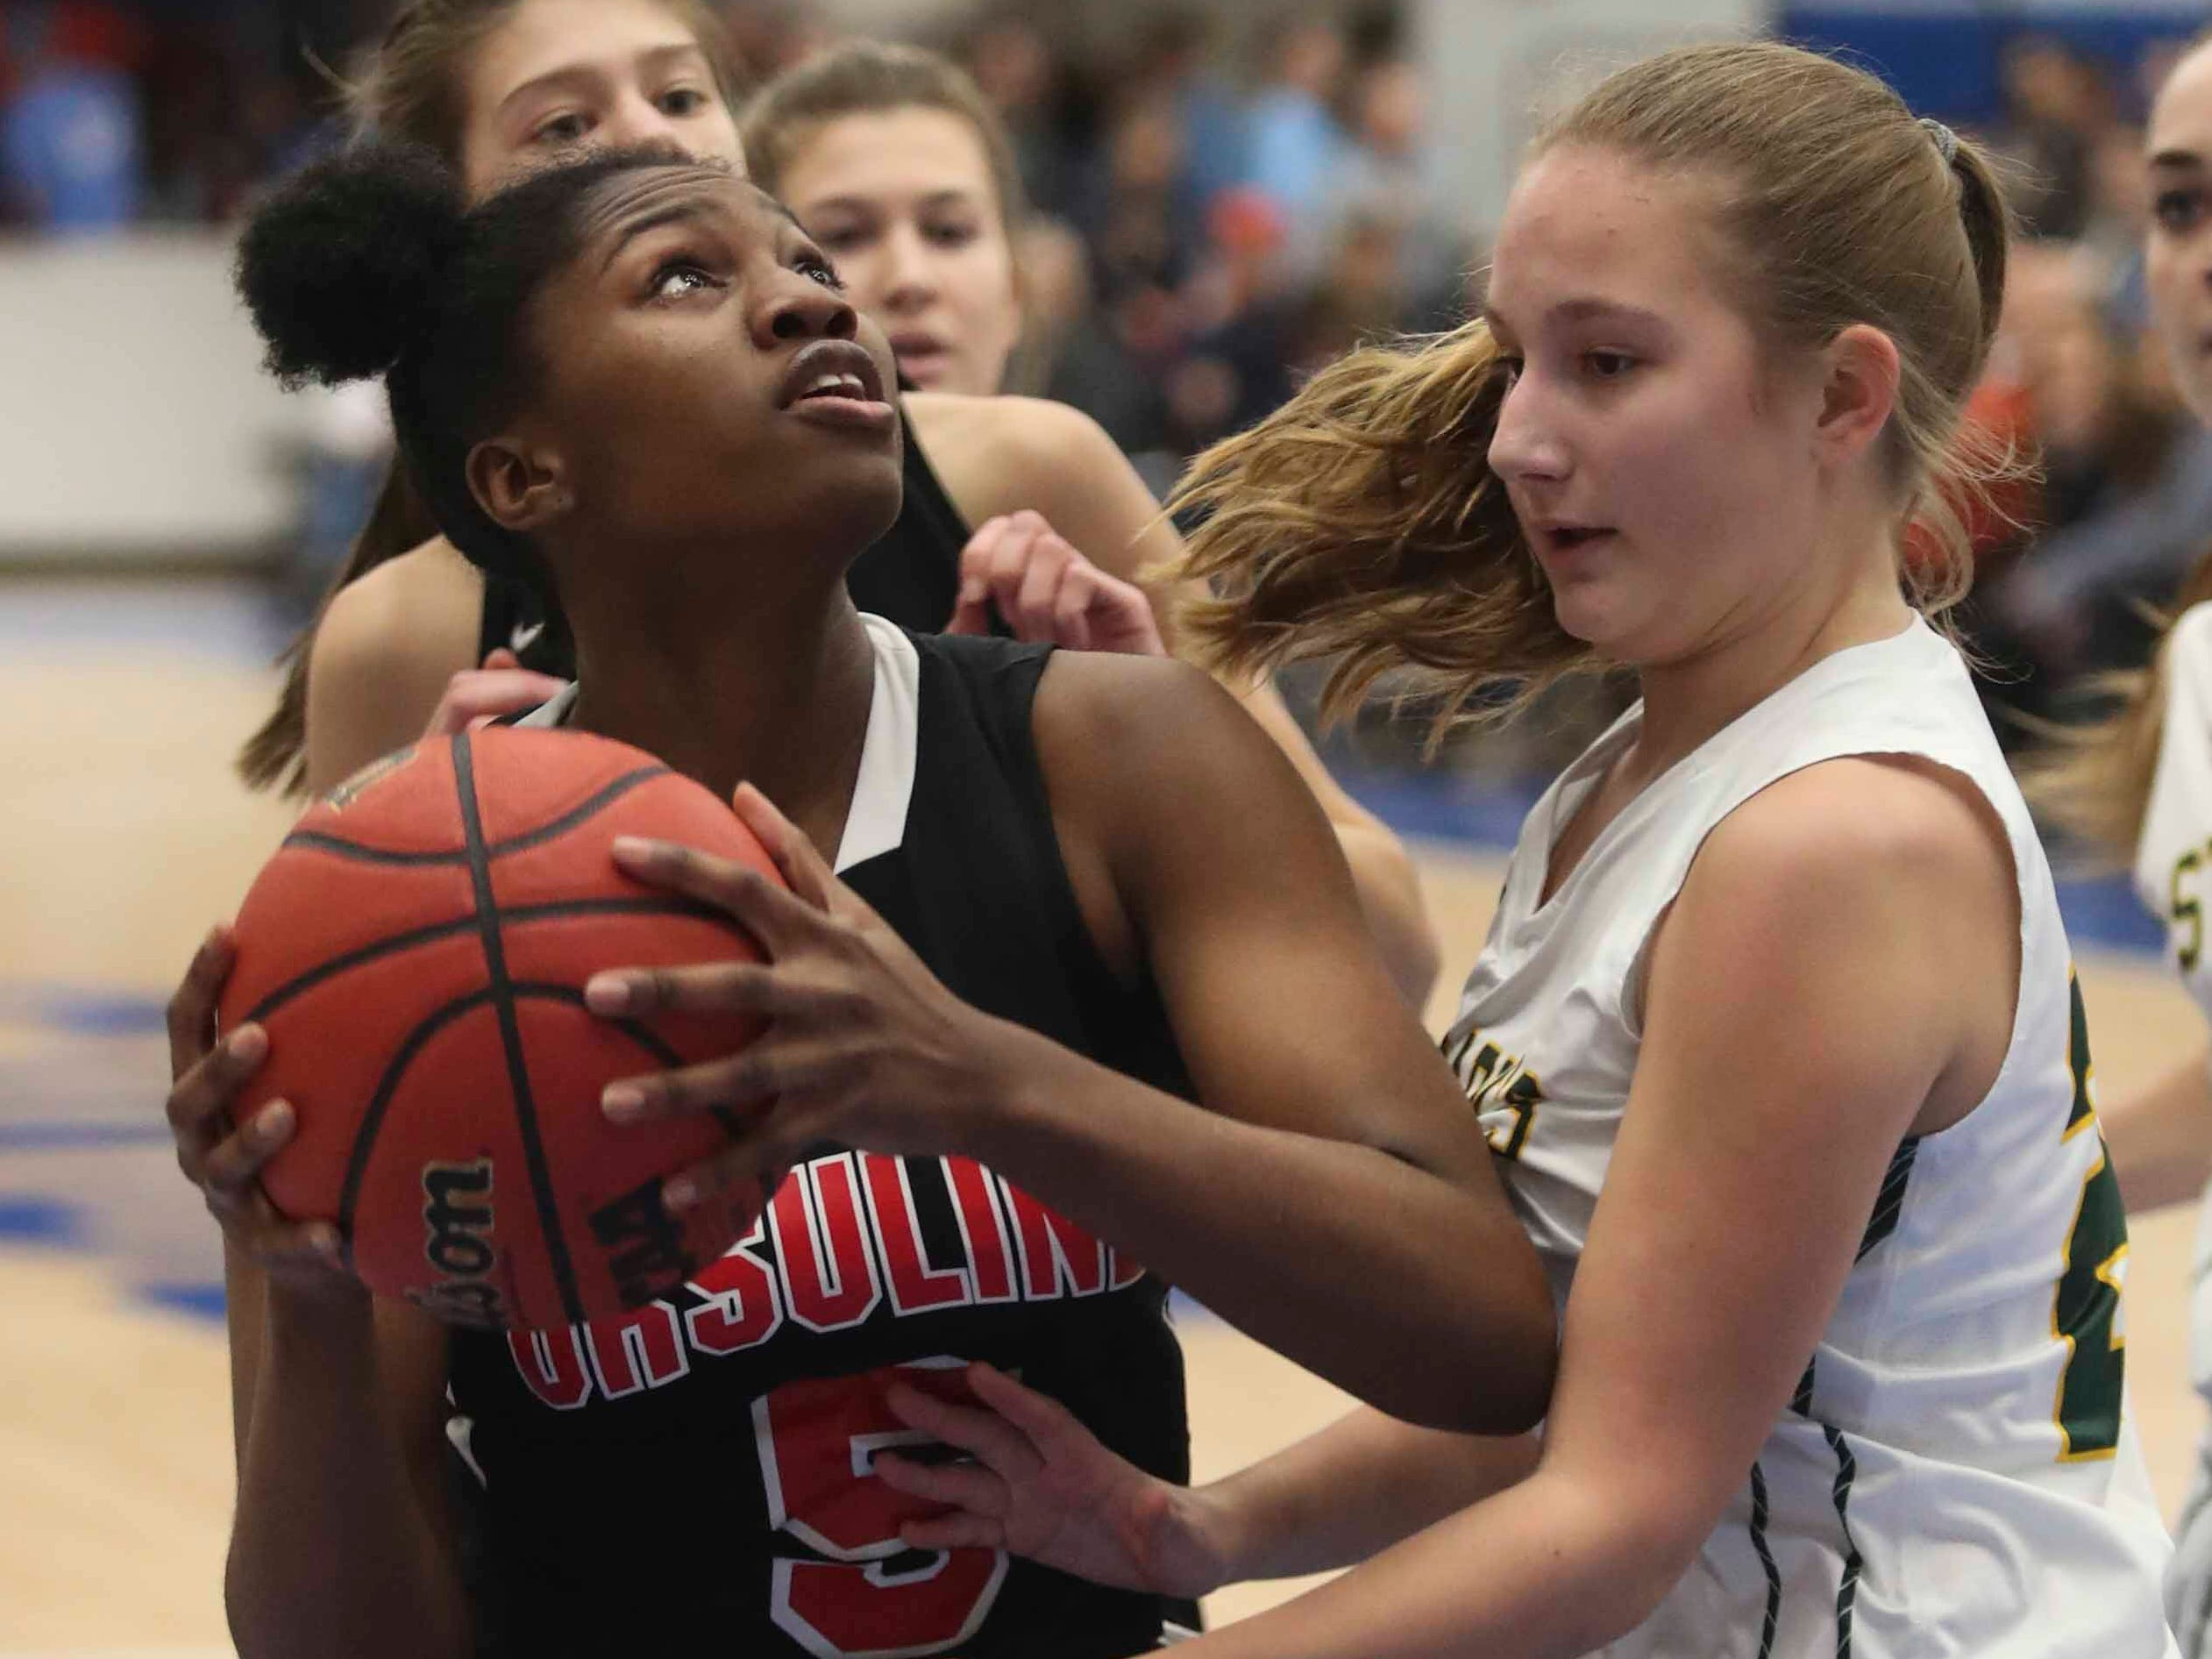 Ursuline's Kay Wulah (left) goes to shoot in front of St. Mark's Madalyn Lenick in the SL24 Memorial Basketball Classic at the 76ers Fieldhouse in Wilmington Friday.